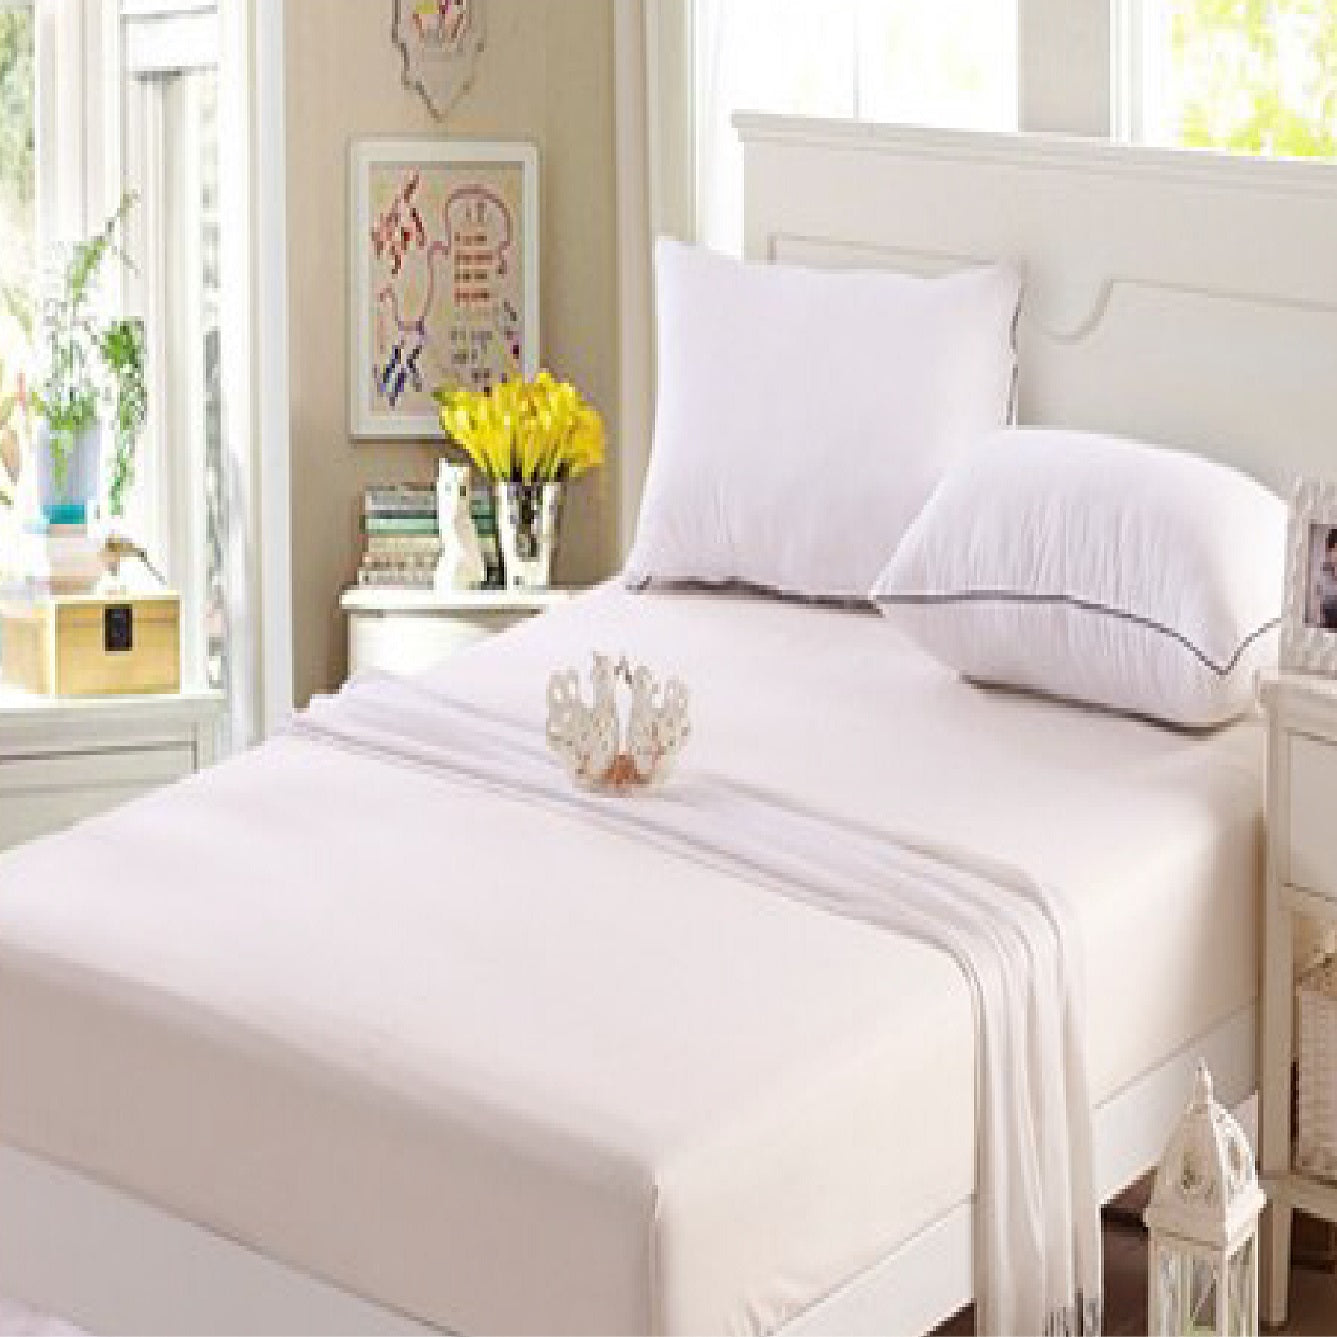 Aussino Plain Dye Fitted Sheet Set